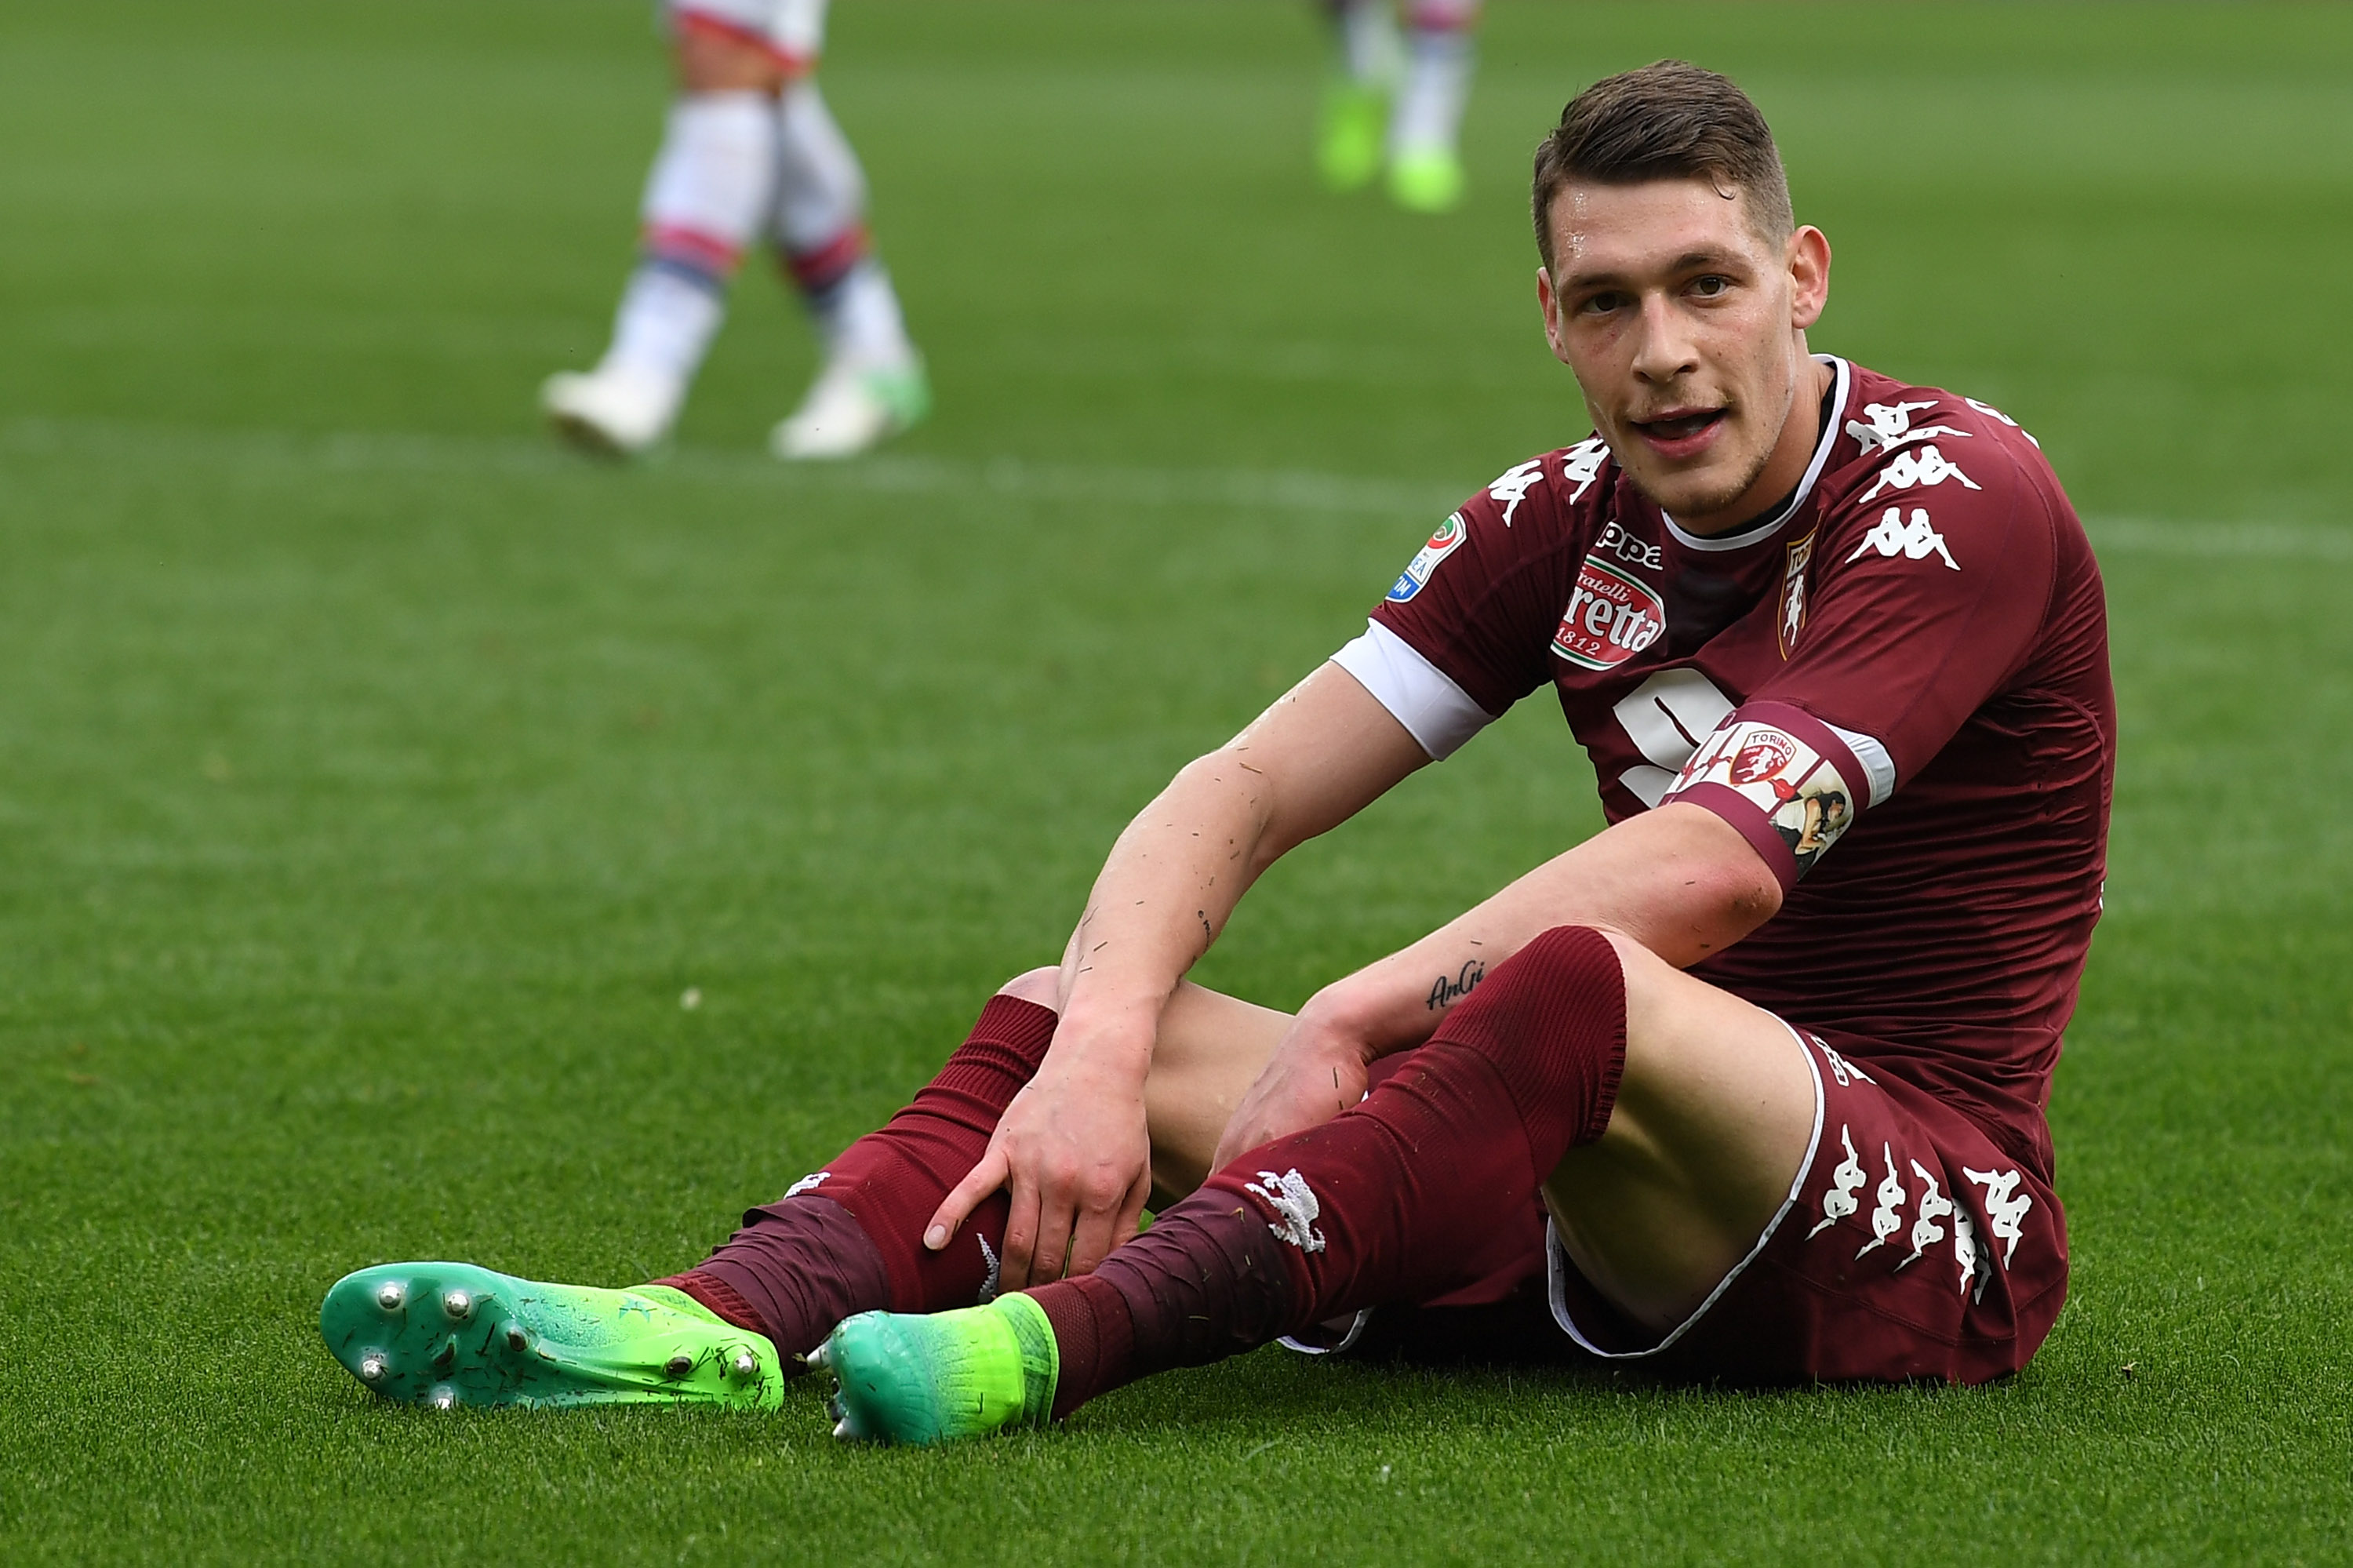 Could Belotti end up at Tottenham? (Photo by Valerio Pennicino/Getty Images)